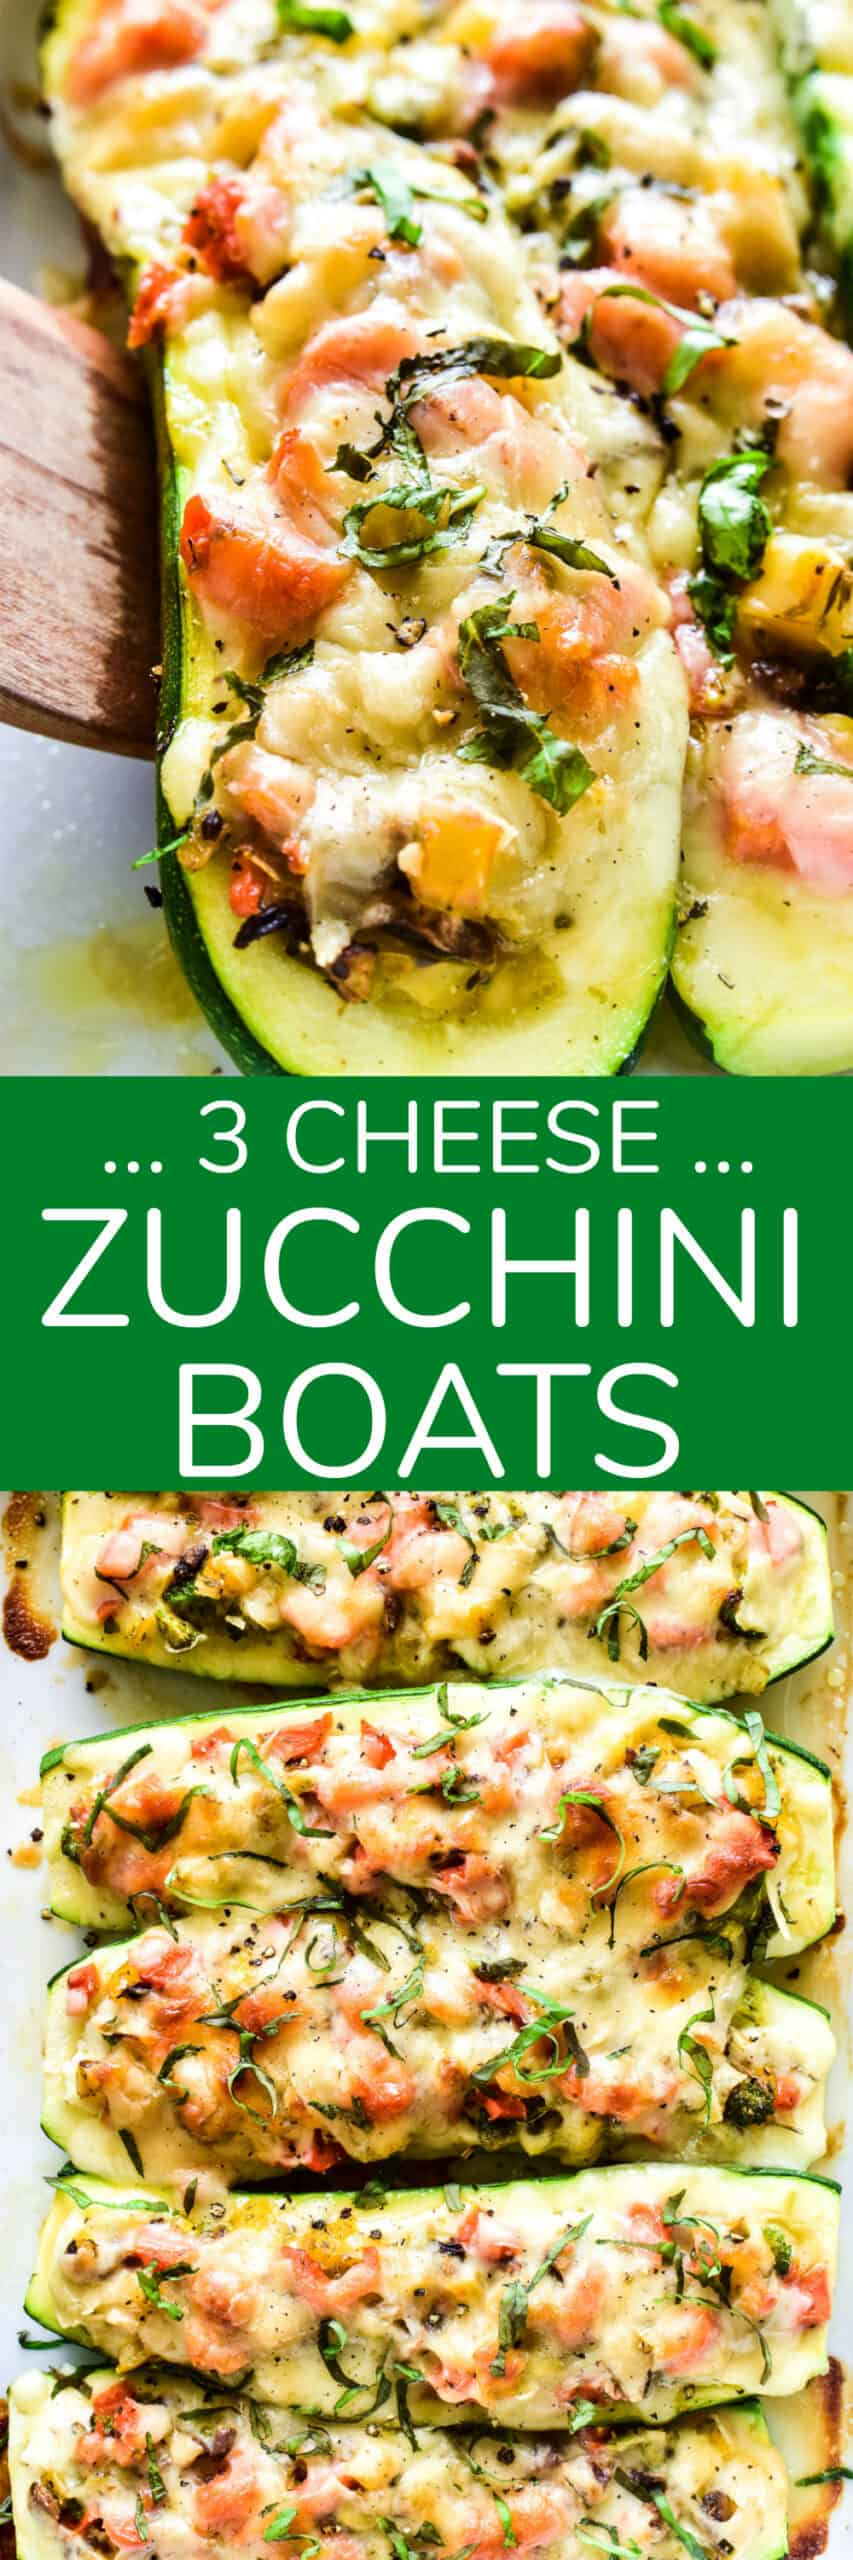 Zucchini Boats are a healthy dinner option with so many fun possibilities! This 3-Cheese version combines sauteed veggies with ricotta, mozzarella, and Parmesan cheeses in a delicious low-carb meal the whole family will love!